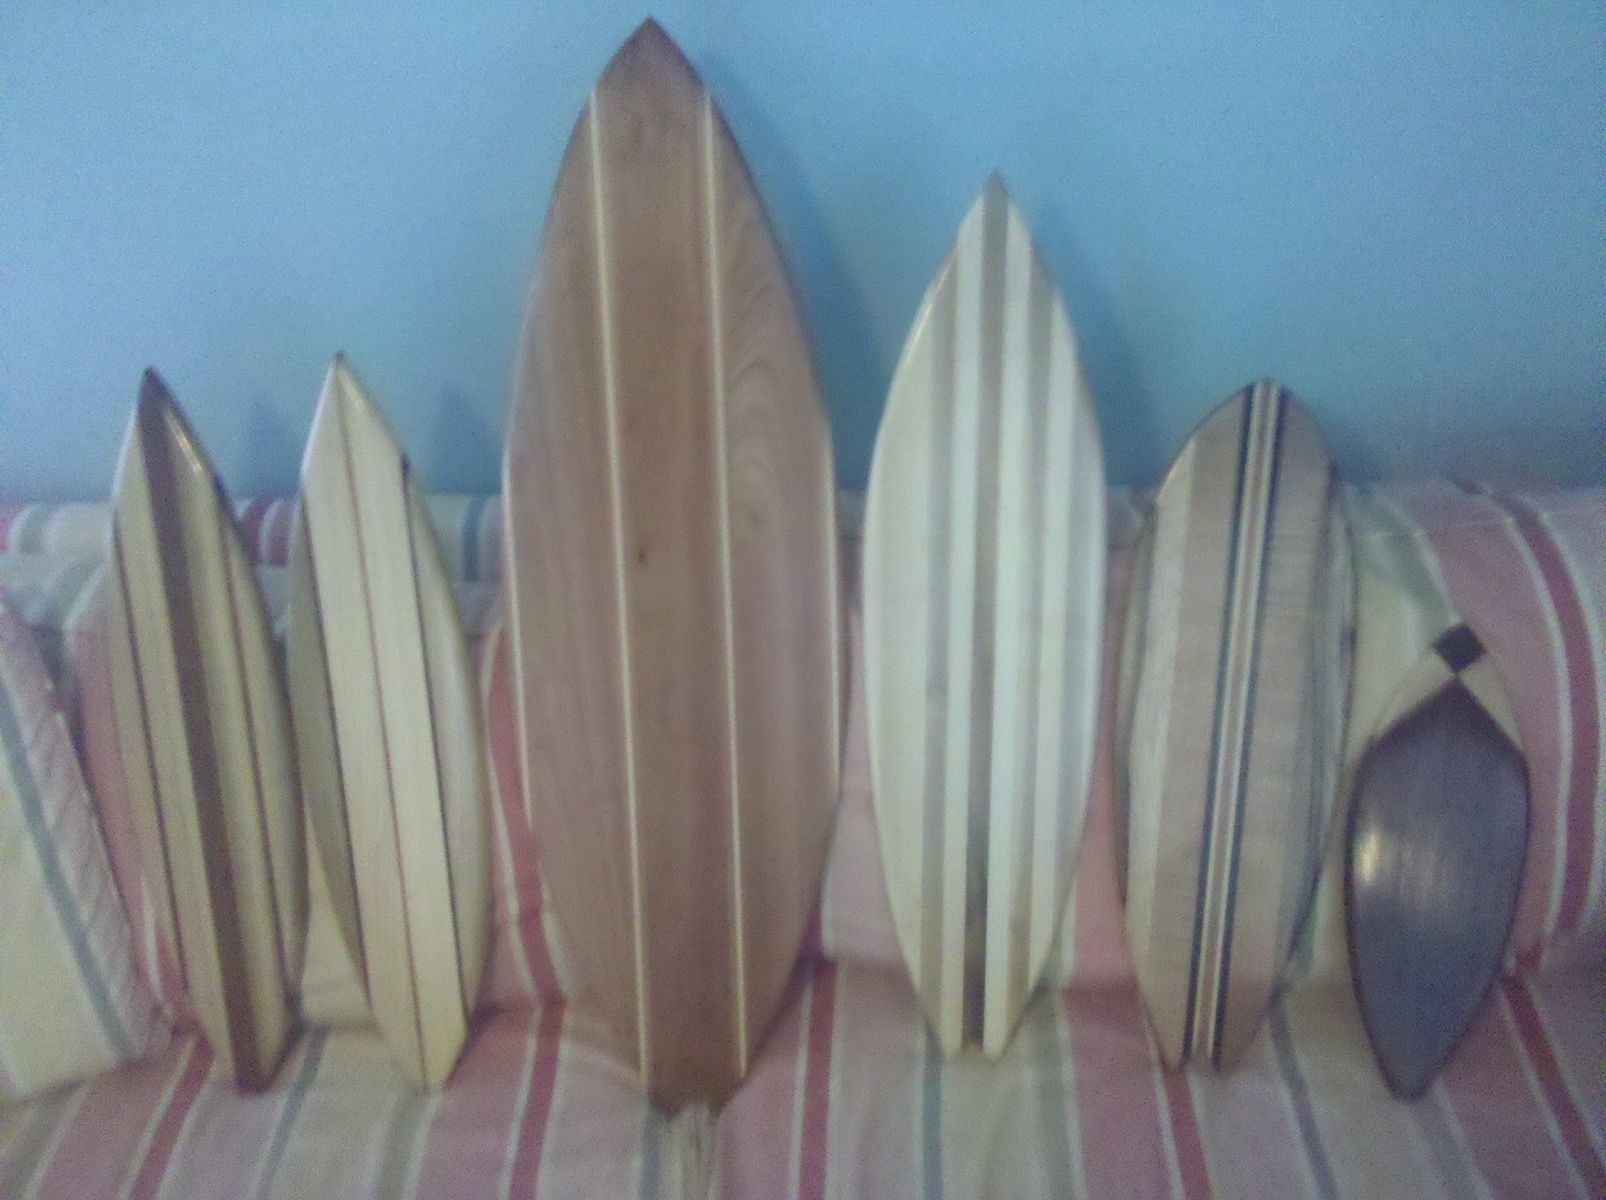 Wood Surfboard Wall Décor Ideas — Room Decor : How To Select with Surfboard Wall Art (Image 18 of 20)